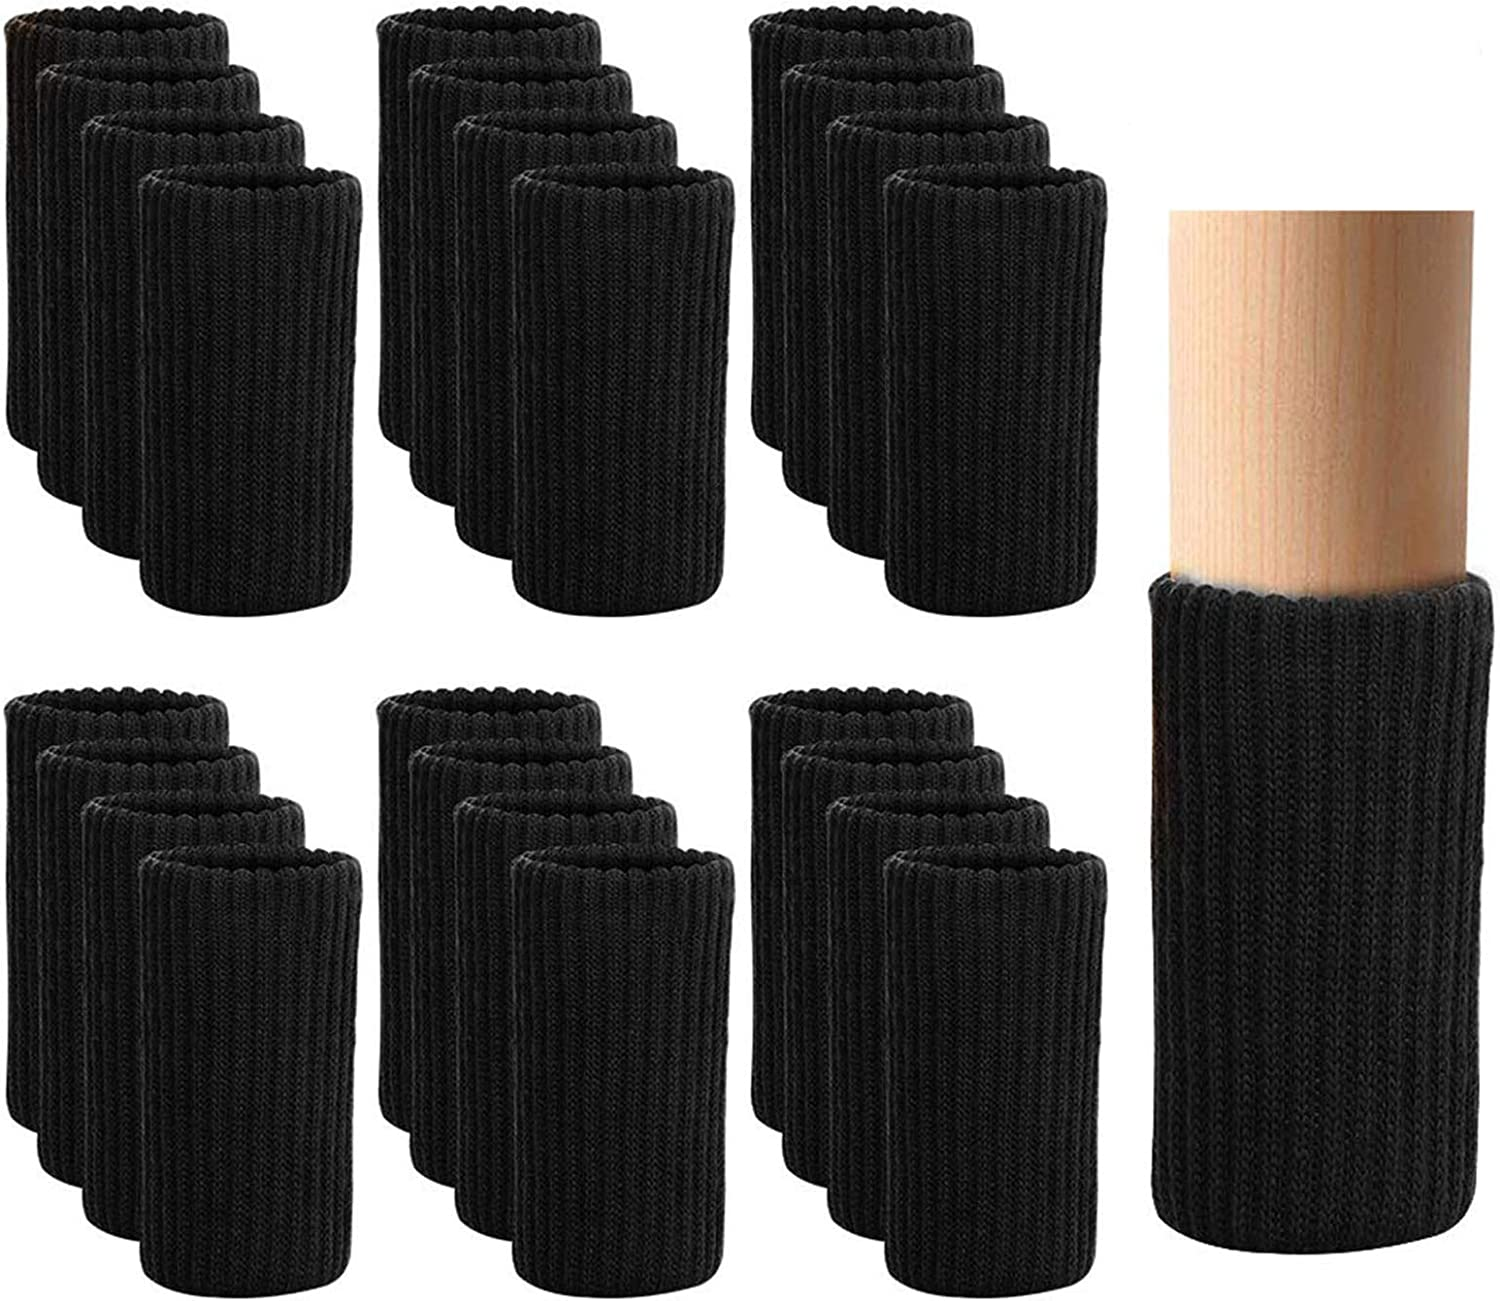 24 PCS Furniture Leg Socks Knitted Furniture Socks - Chair Leg Floor Protectors for Avoid Scratches, Furniture Pads Set for Moving Easily and Reduce Noise, Black